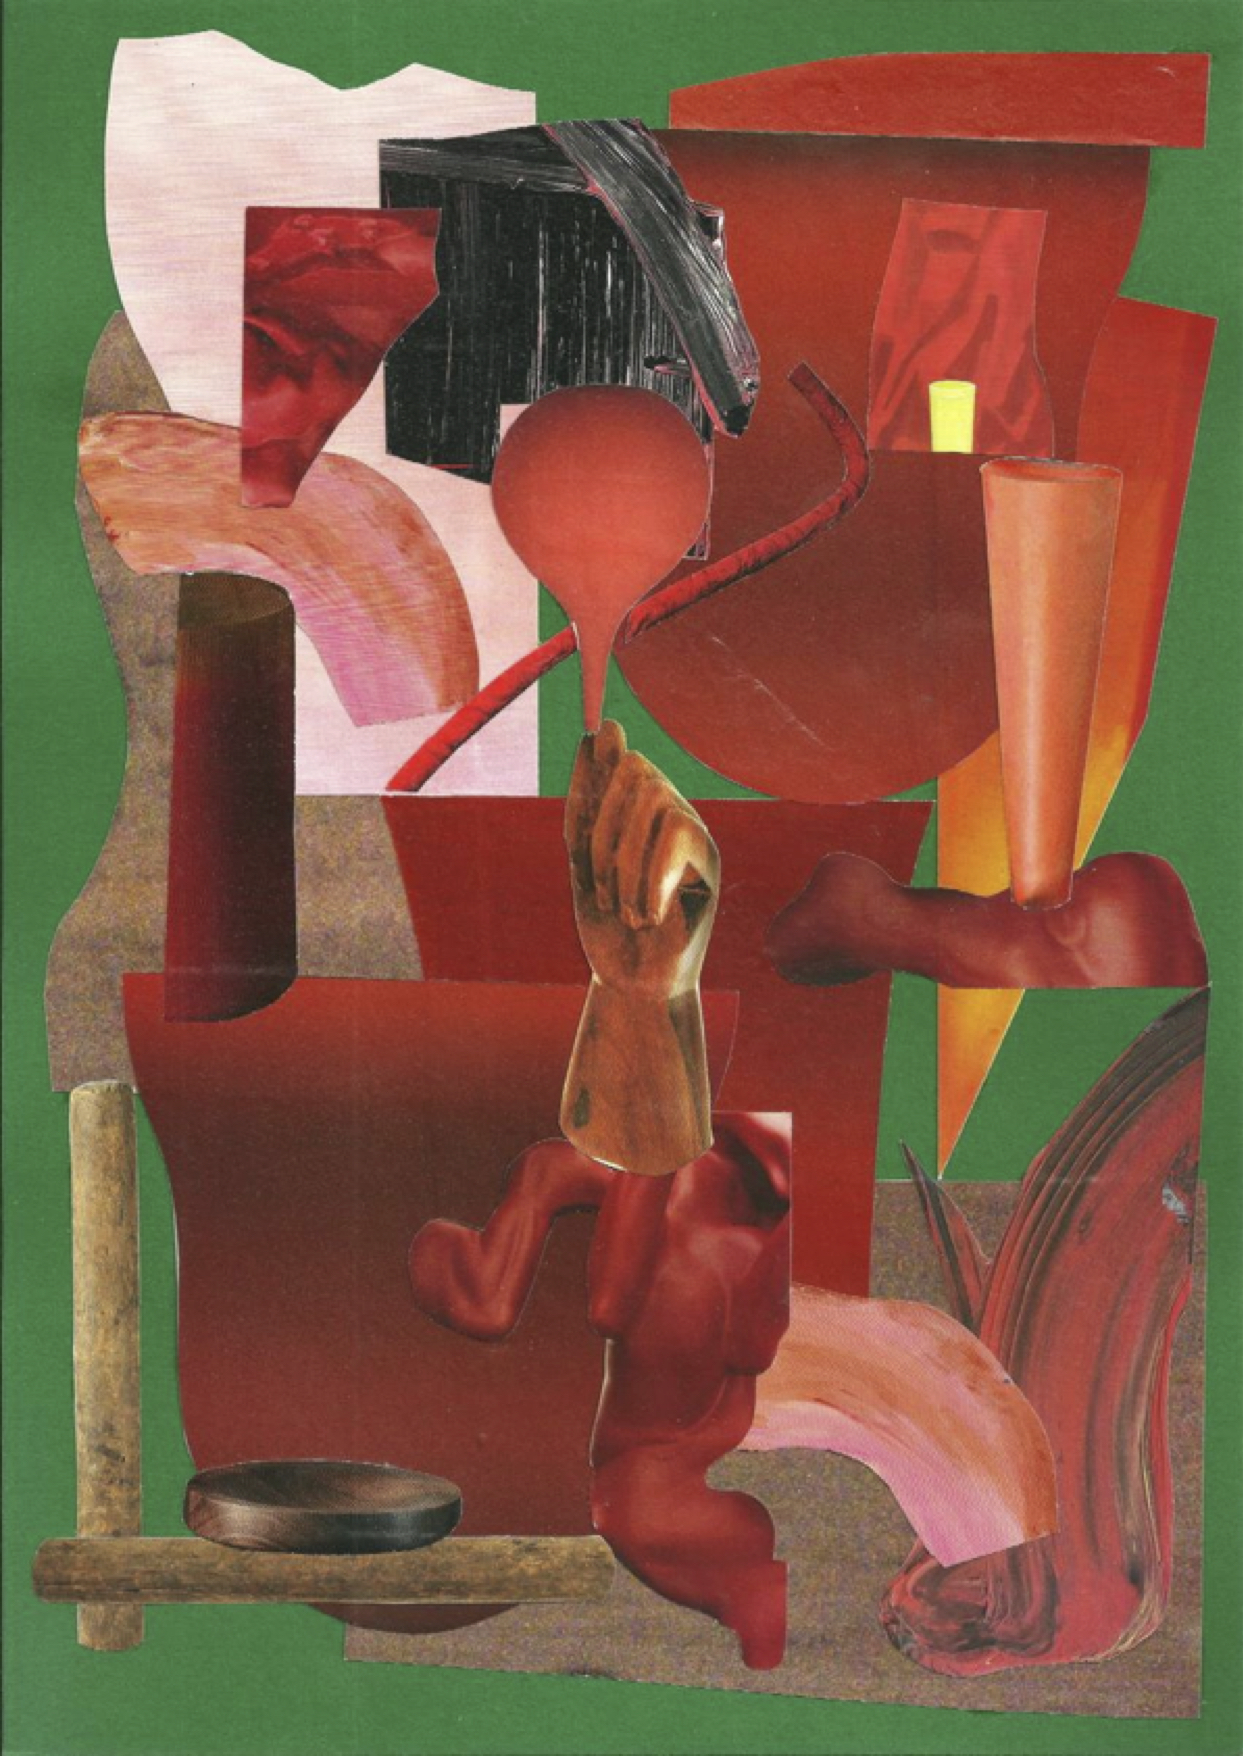 Diablo  Study, 2018 Collage on card 25 x 34cm (framed) 21.1 x 29.7cm (unframed)